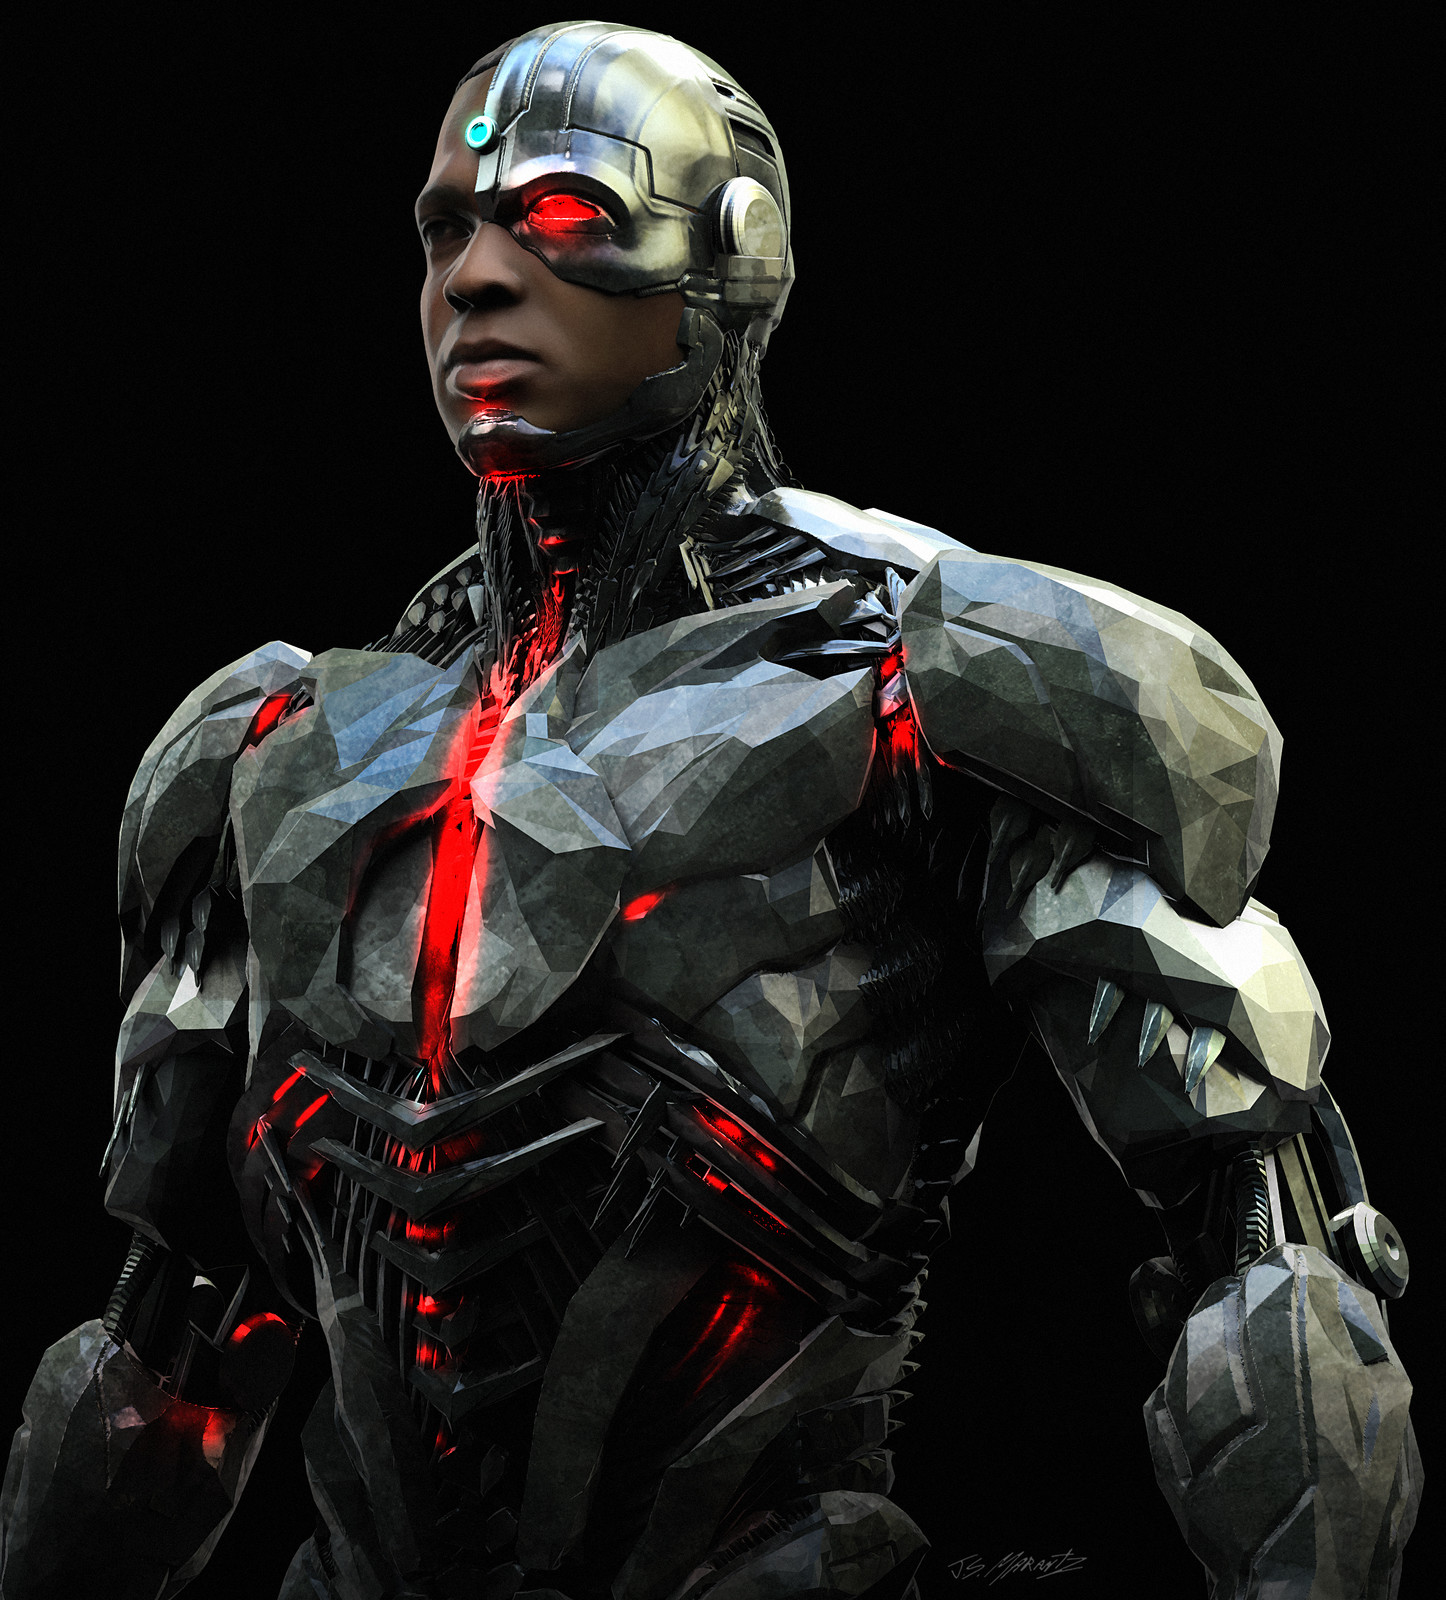 Justice League: Cyborg Concept Art